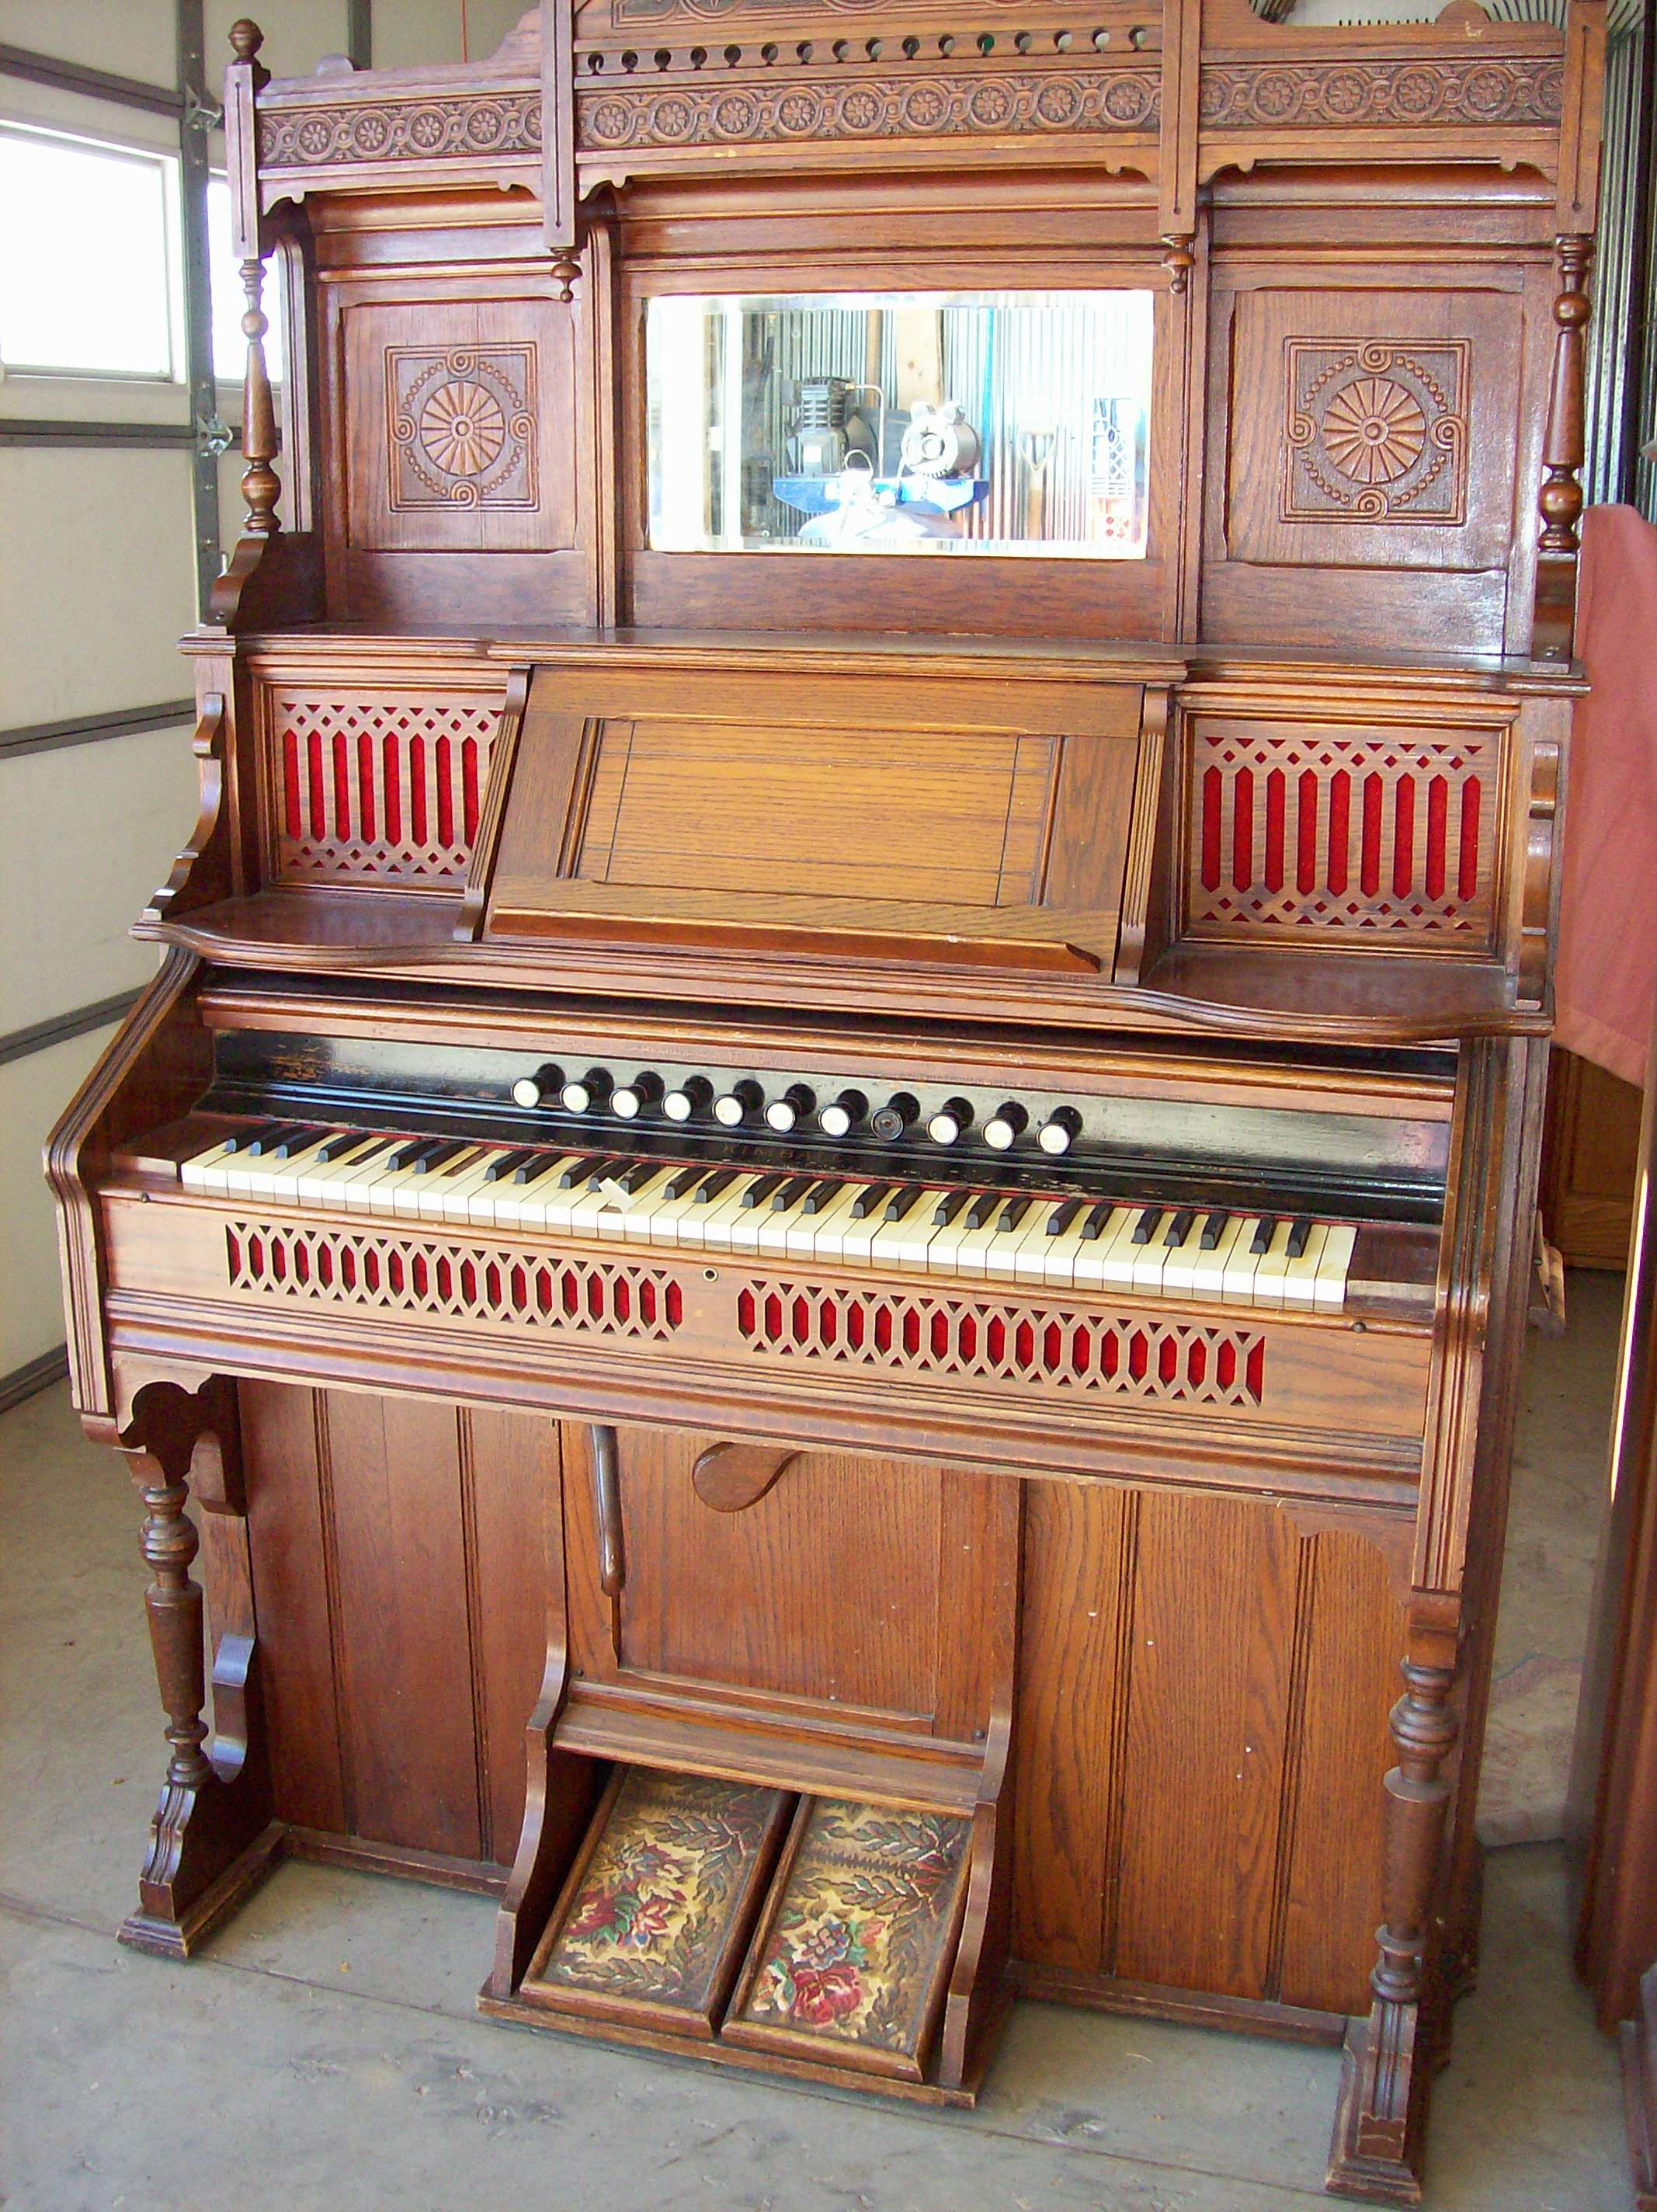 Kimball Pump Organ  Chicago My Kind of Town in 2019